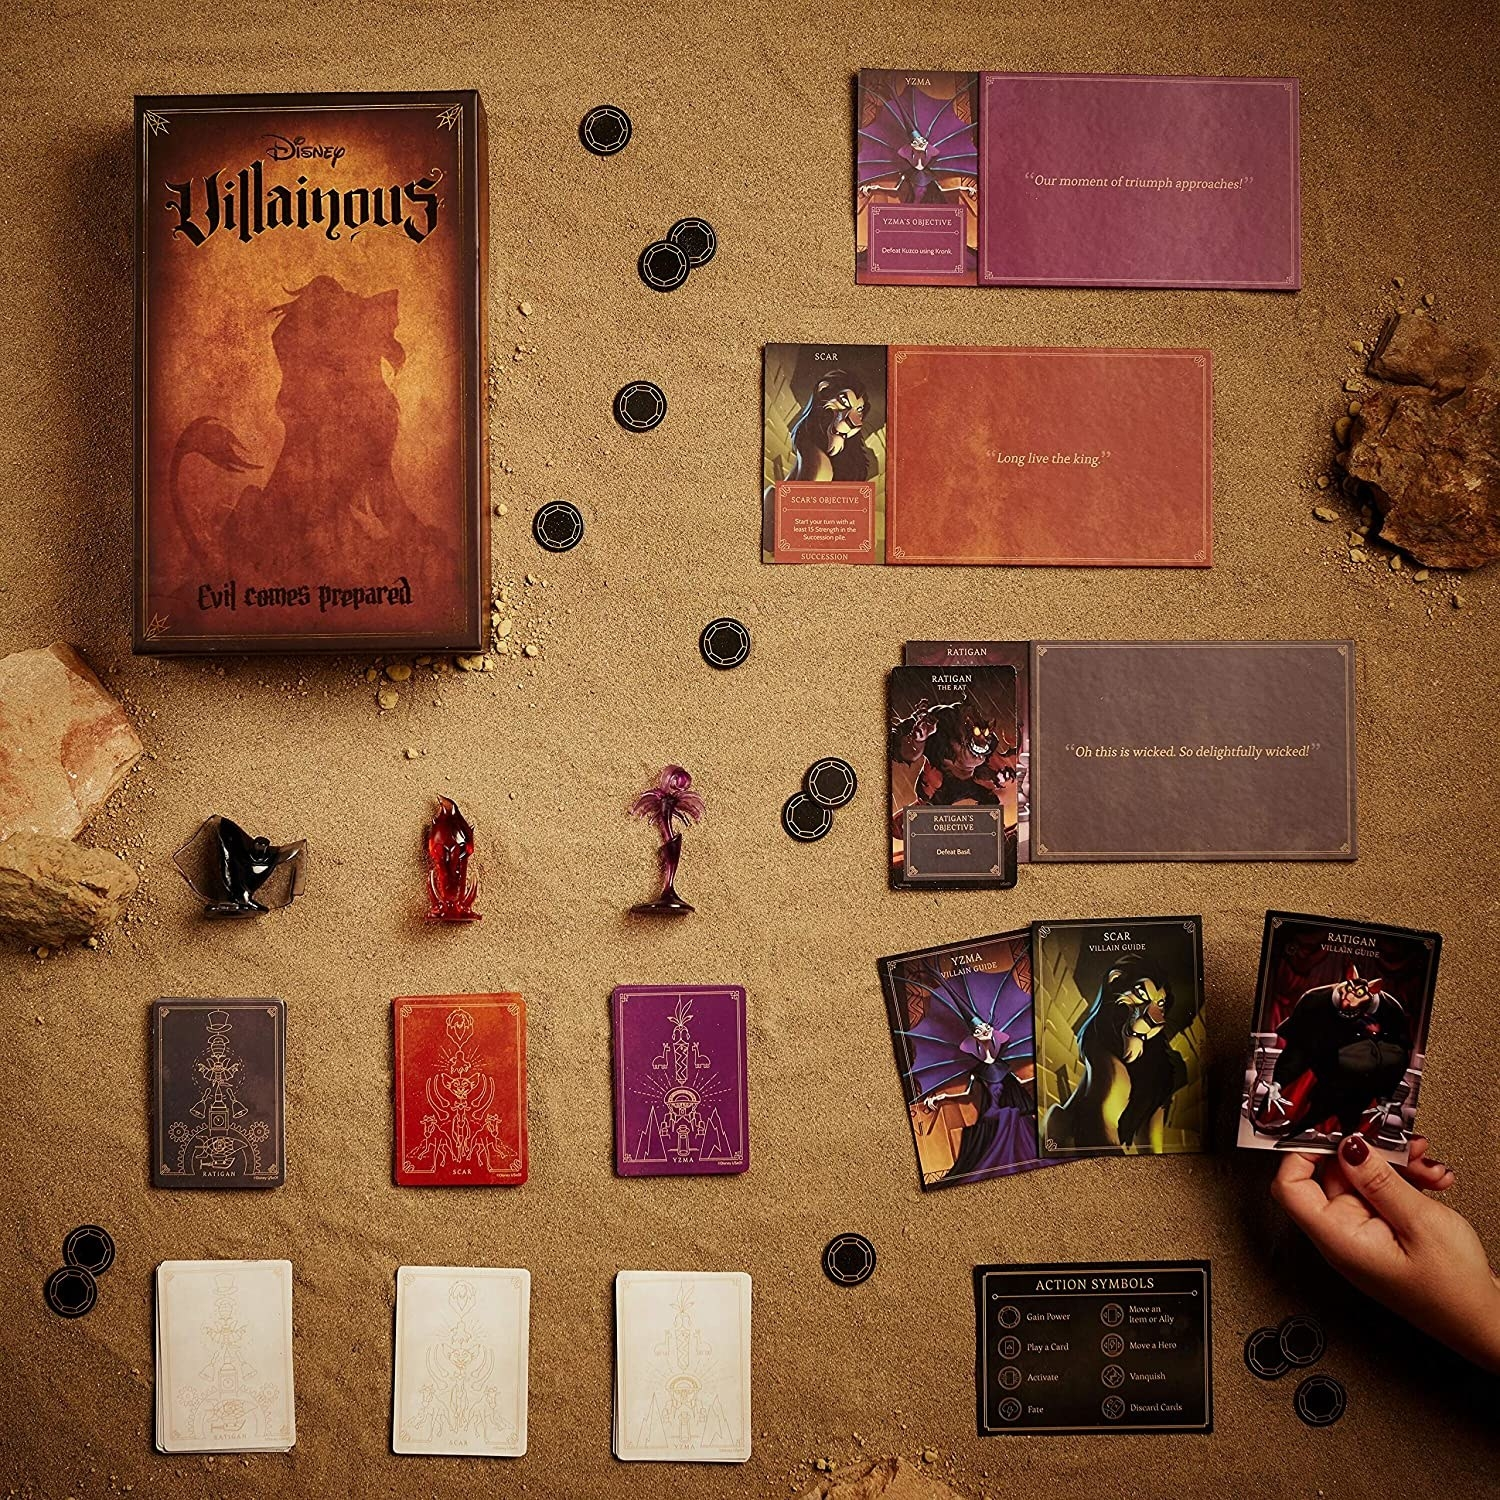 The pieces, cards, and board for the Disney Villans game